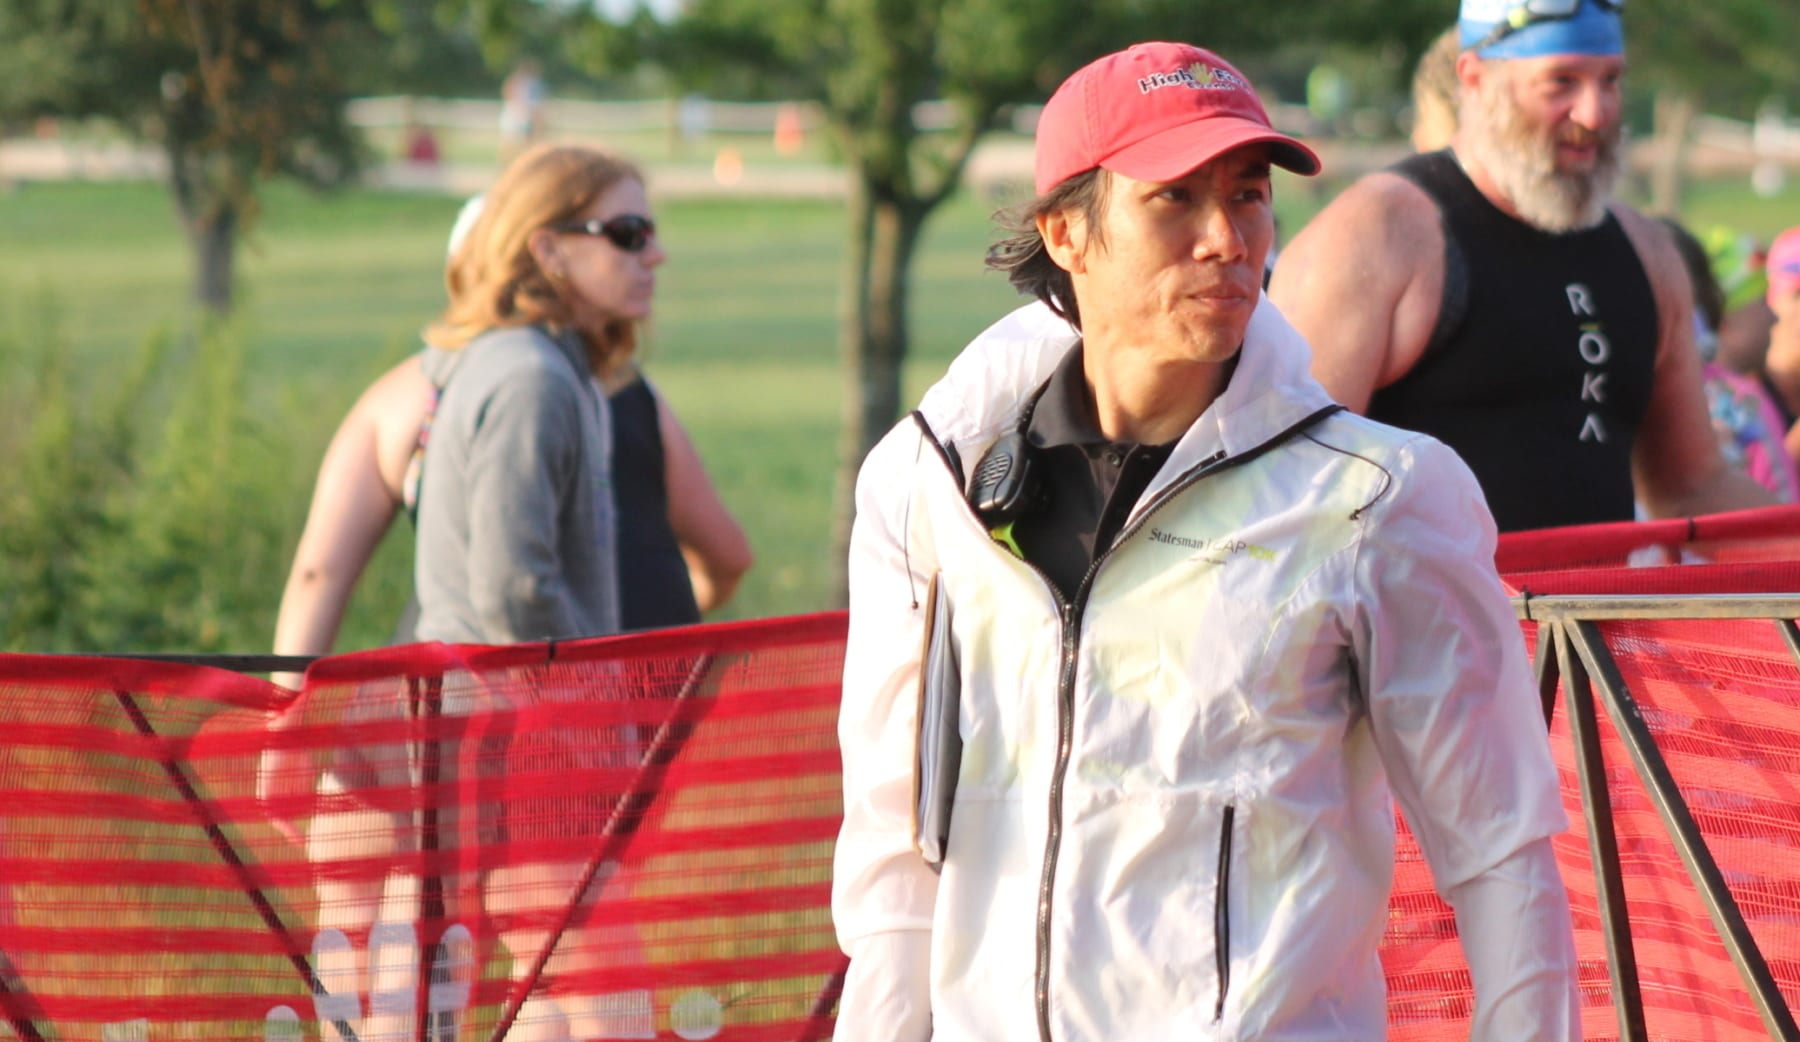 Image of John Chung at Rookie Triathlon.